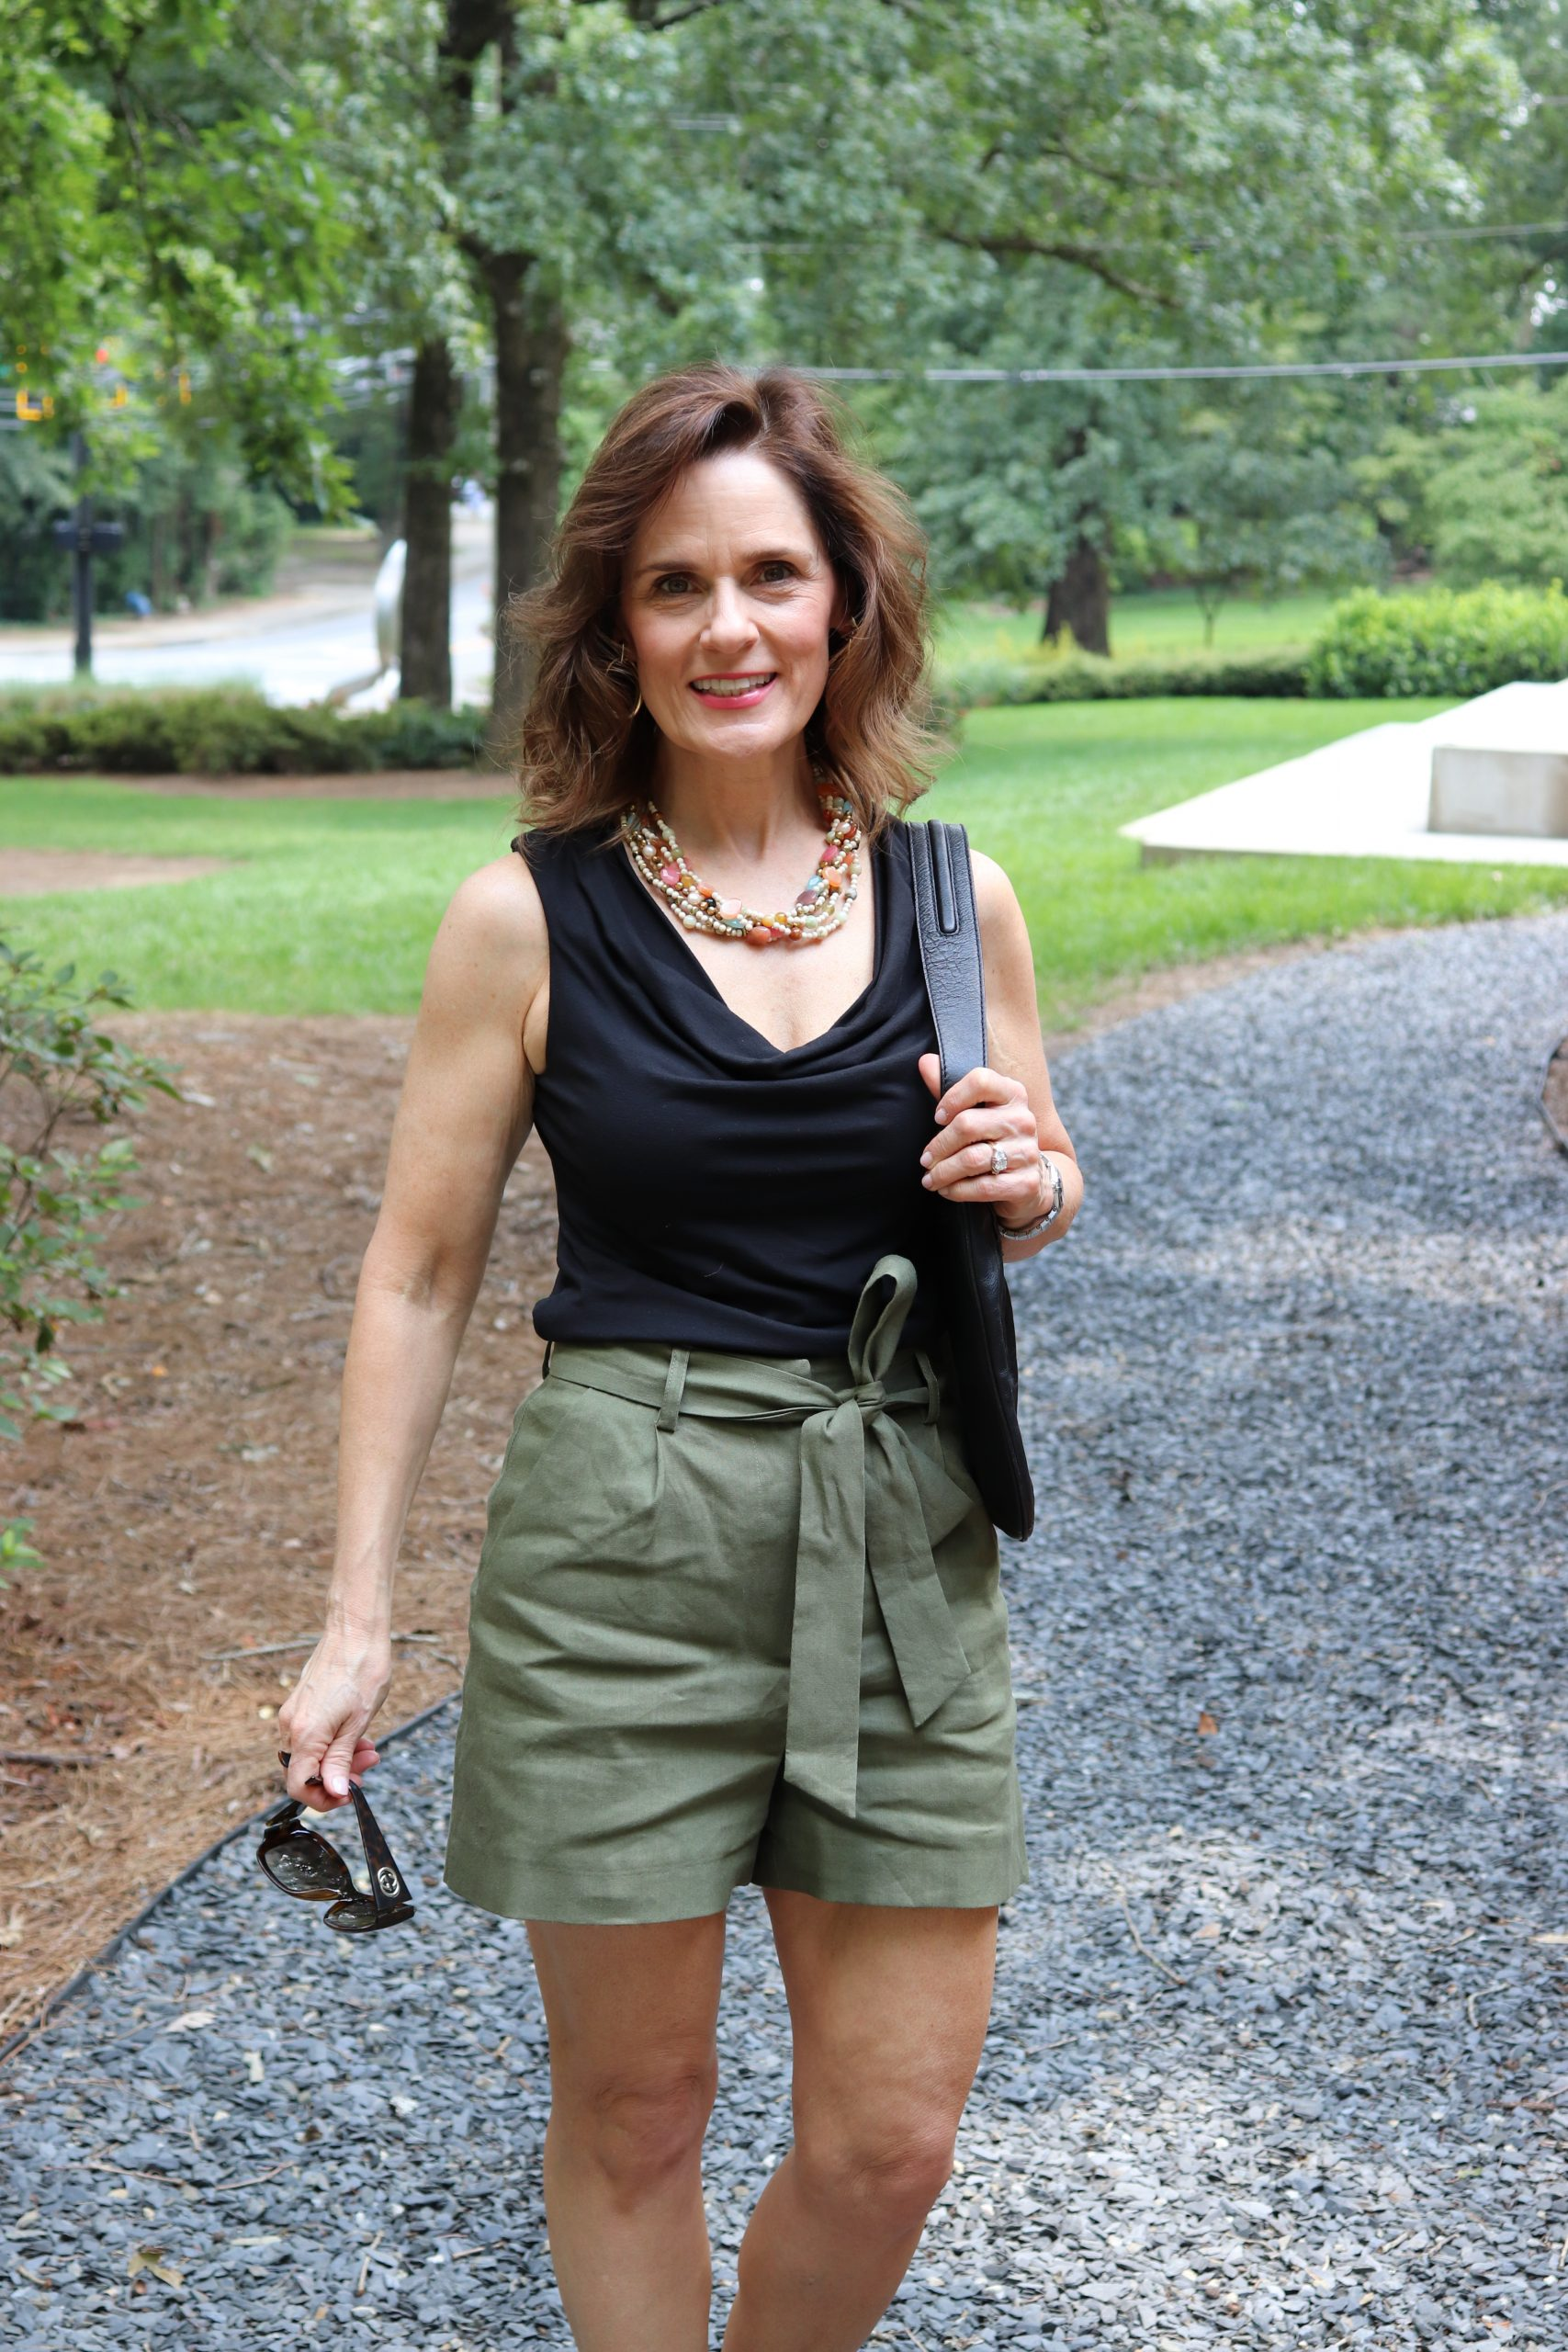 woman over 50 wearing summer neutrals that are a black sleeveless top and dark green shorts walking down a gravel path in a garden